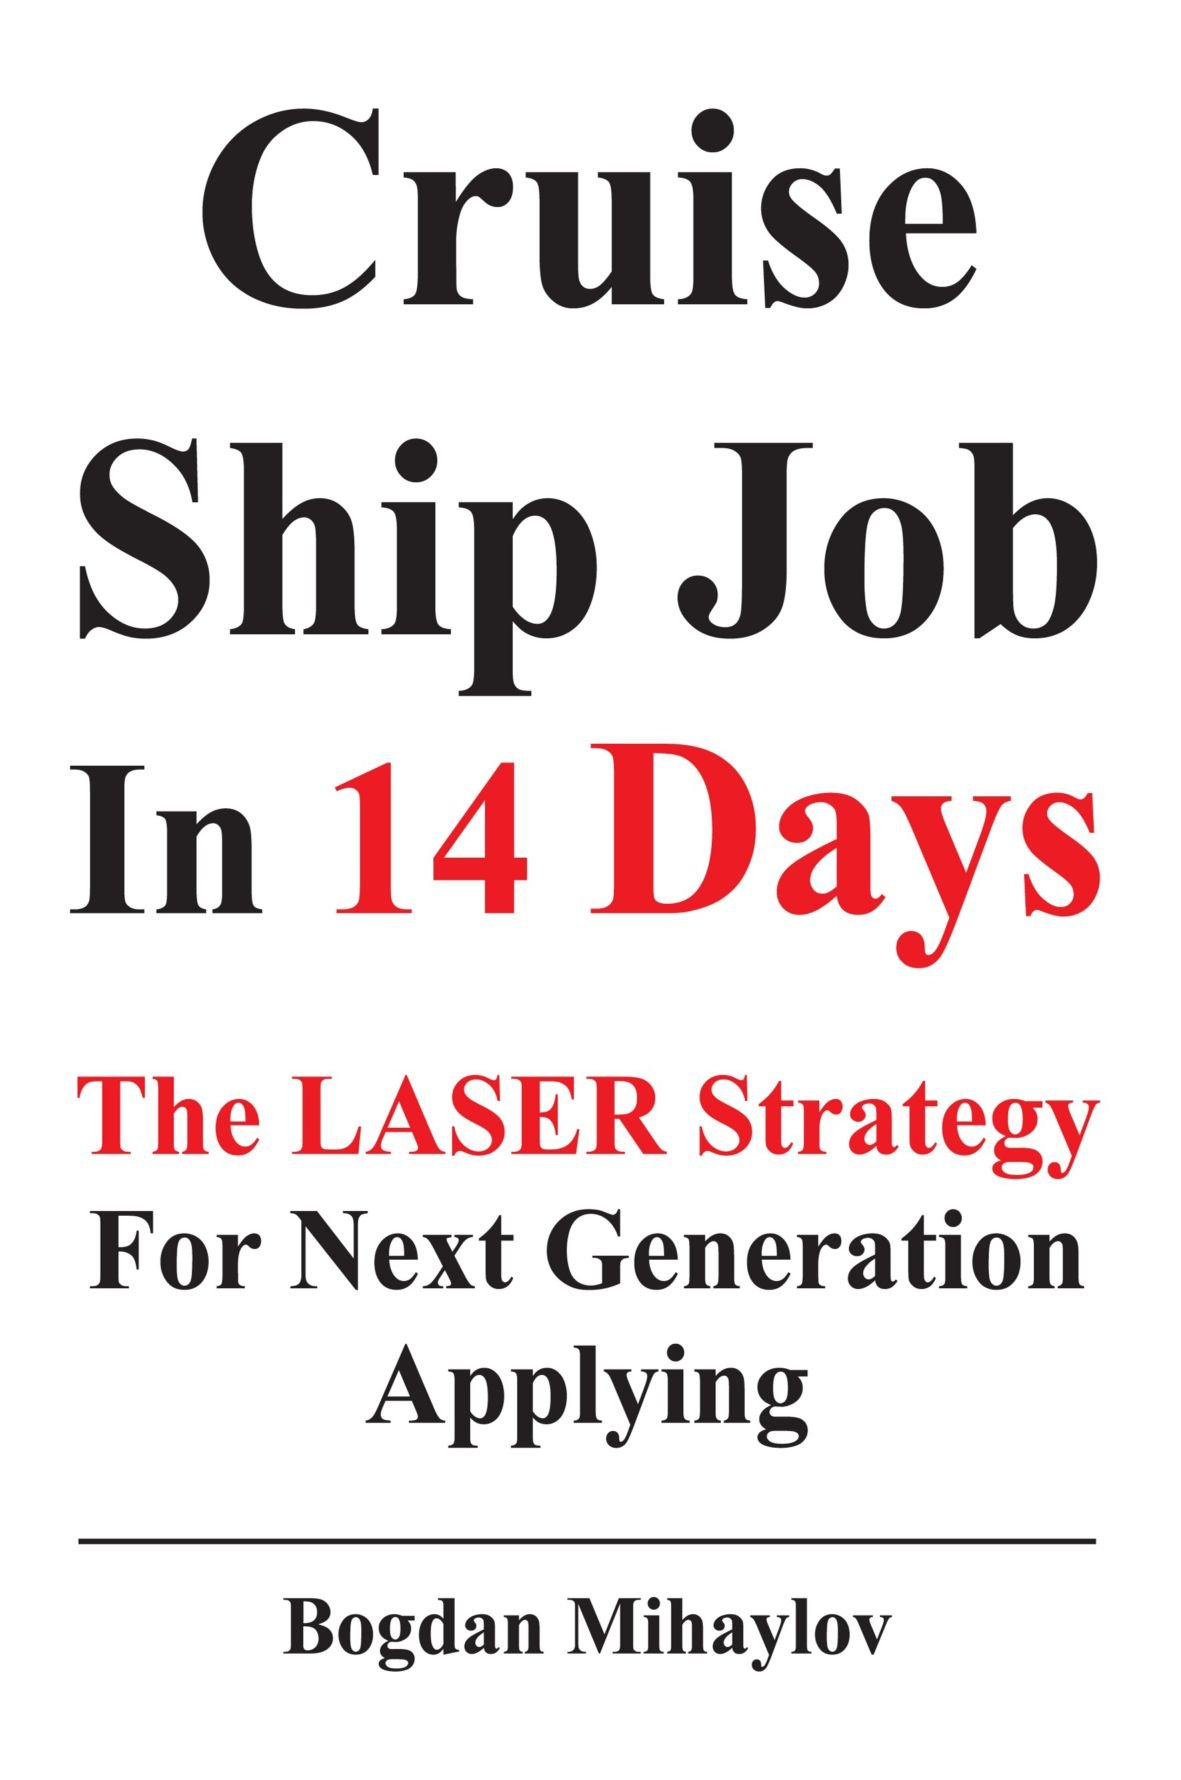 Cruise Ship Job In 14 Days: The Laser Strategy for Next Generation Applying